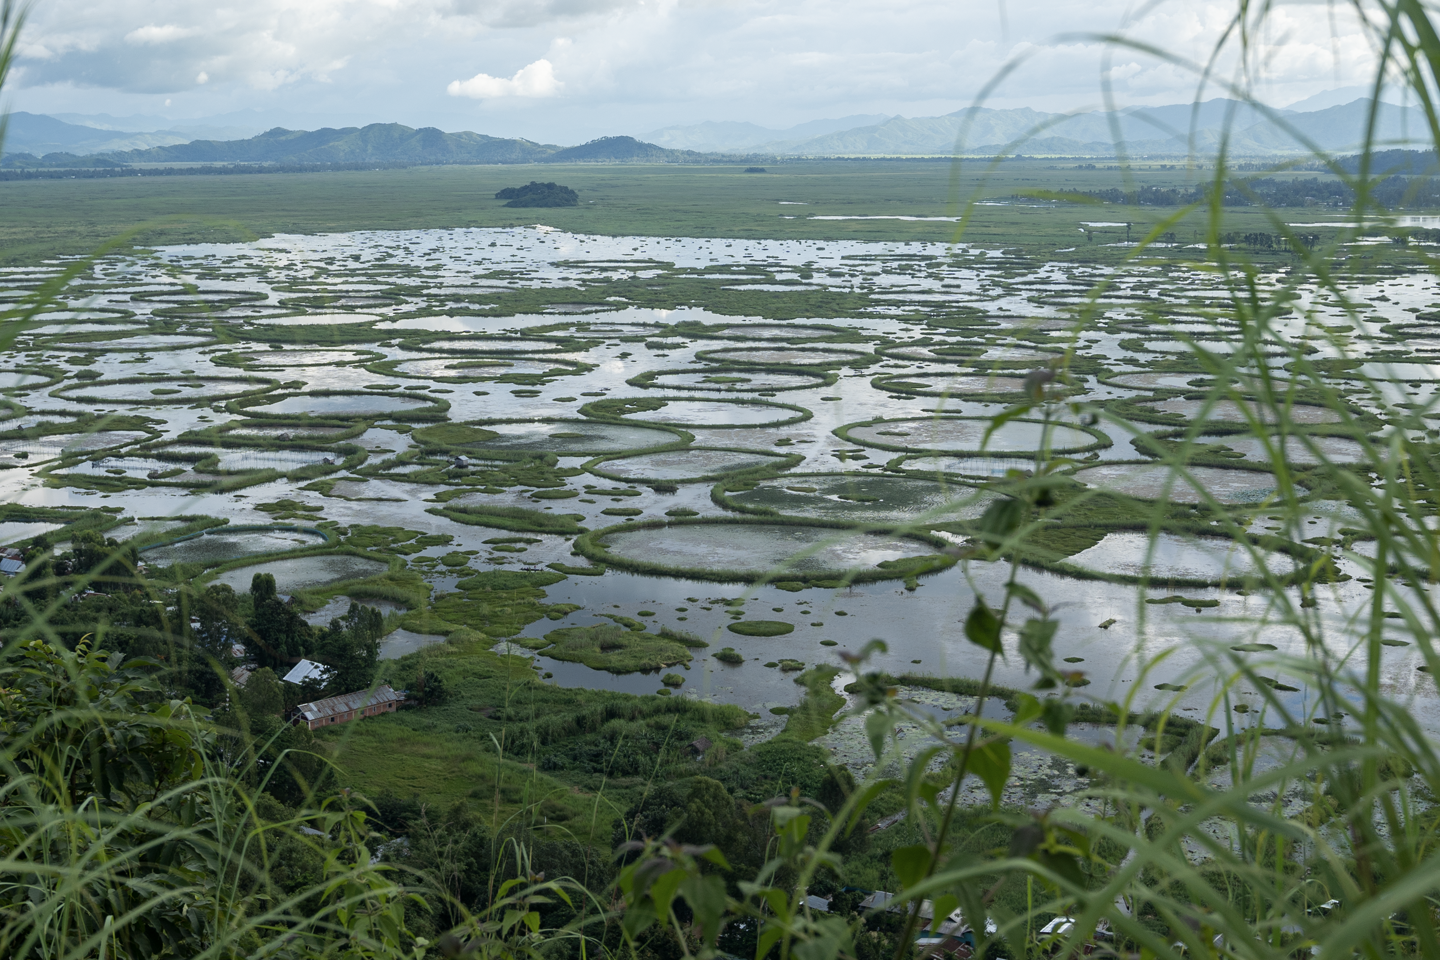 Fish production from Loktak lake dropped drastically since the 1950s and numerous native fish species have either gone extinct or have become endangered. Photo credit: Kartik Chandramouli